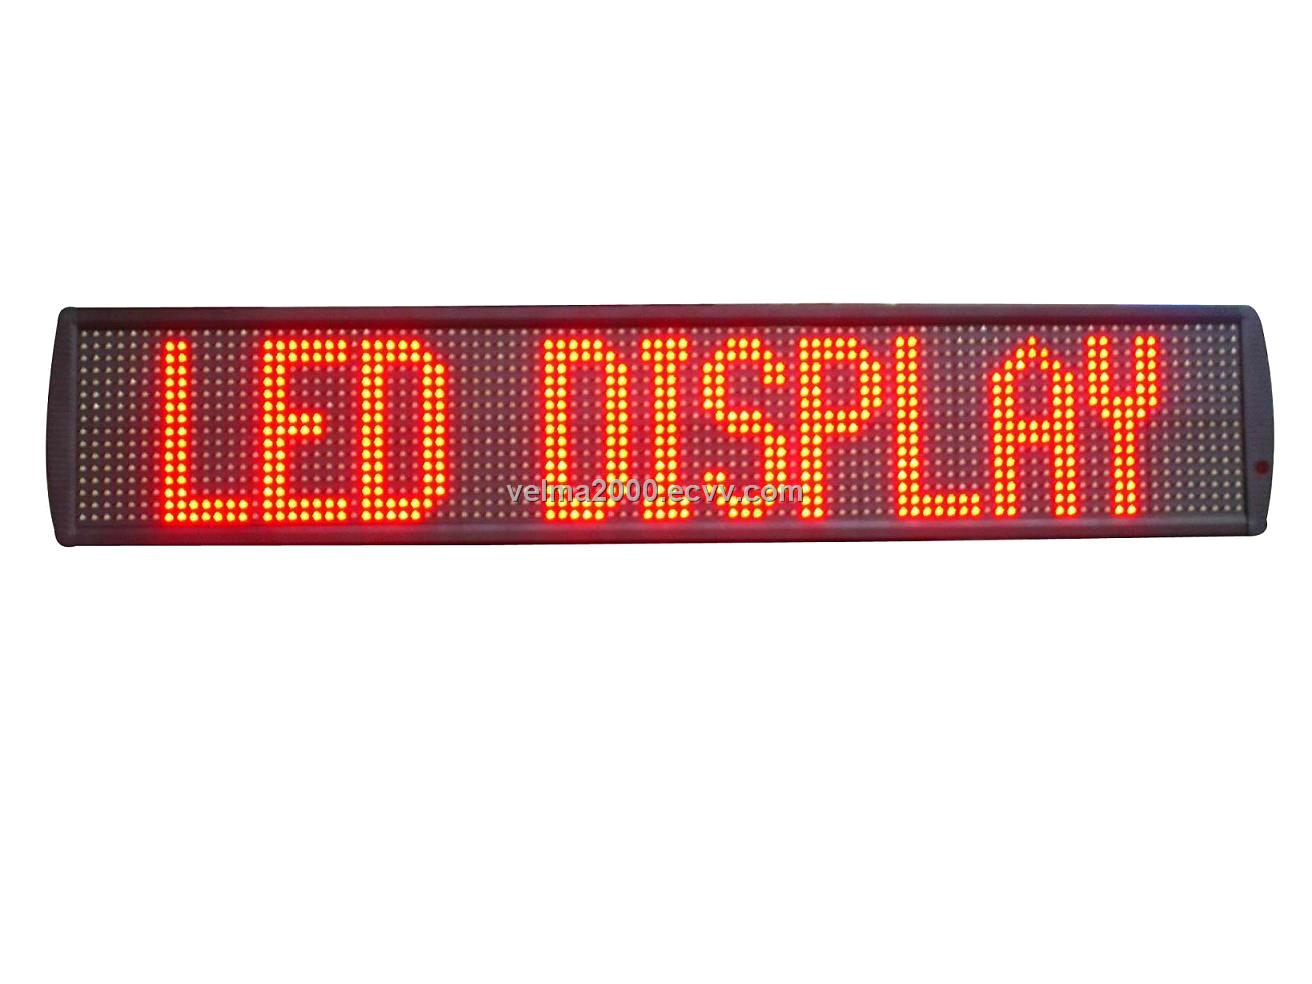 led display Dakco is leading manufacturer of led displays, screens, digital signages and electronic led billboard signs our large display screen panels, full color video sign.